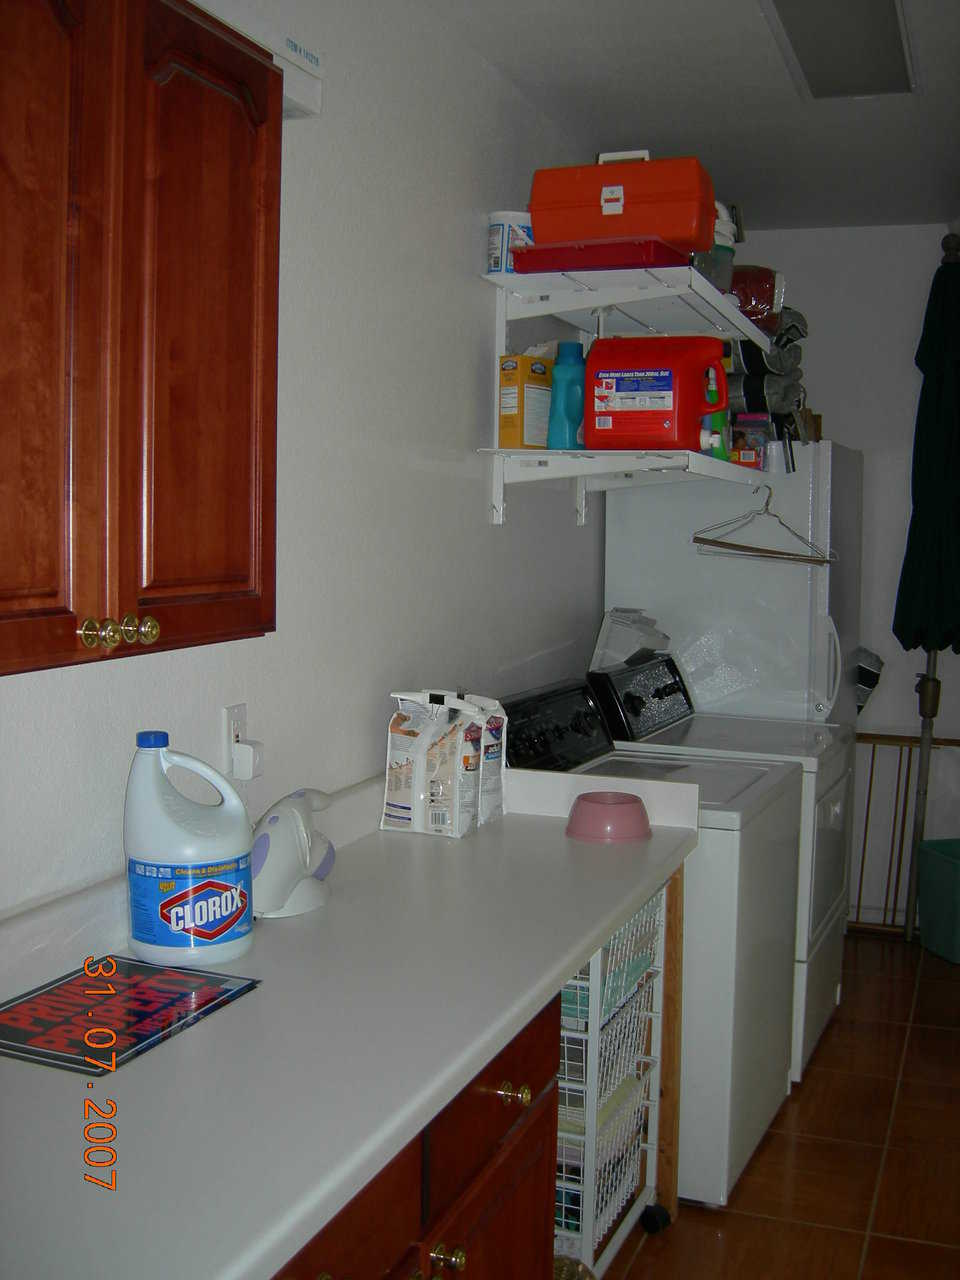 Utility room — Cabinets and hanging shelves provide needed storage.